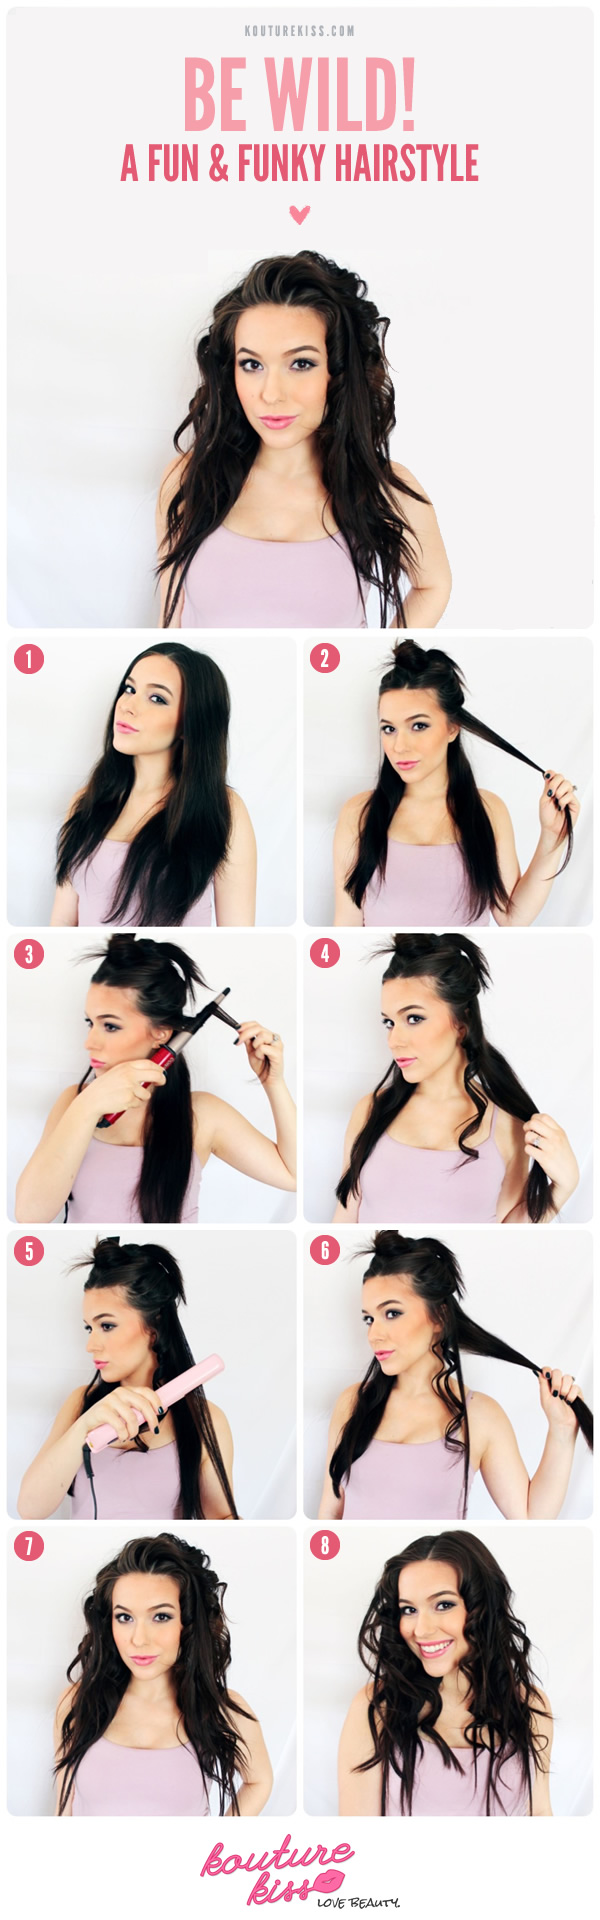 hairstyles (7)